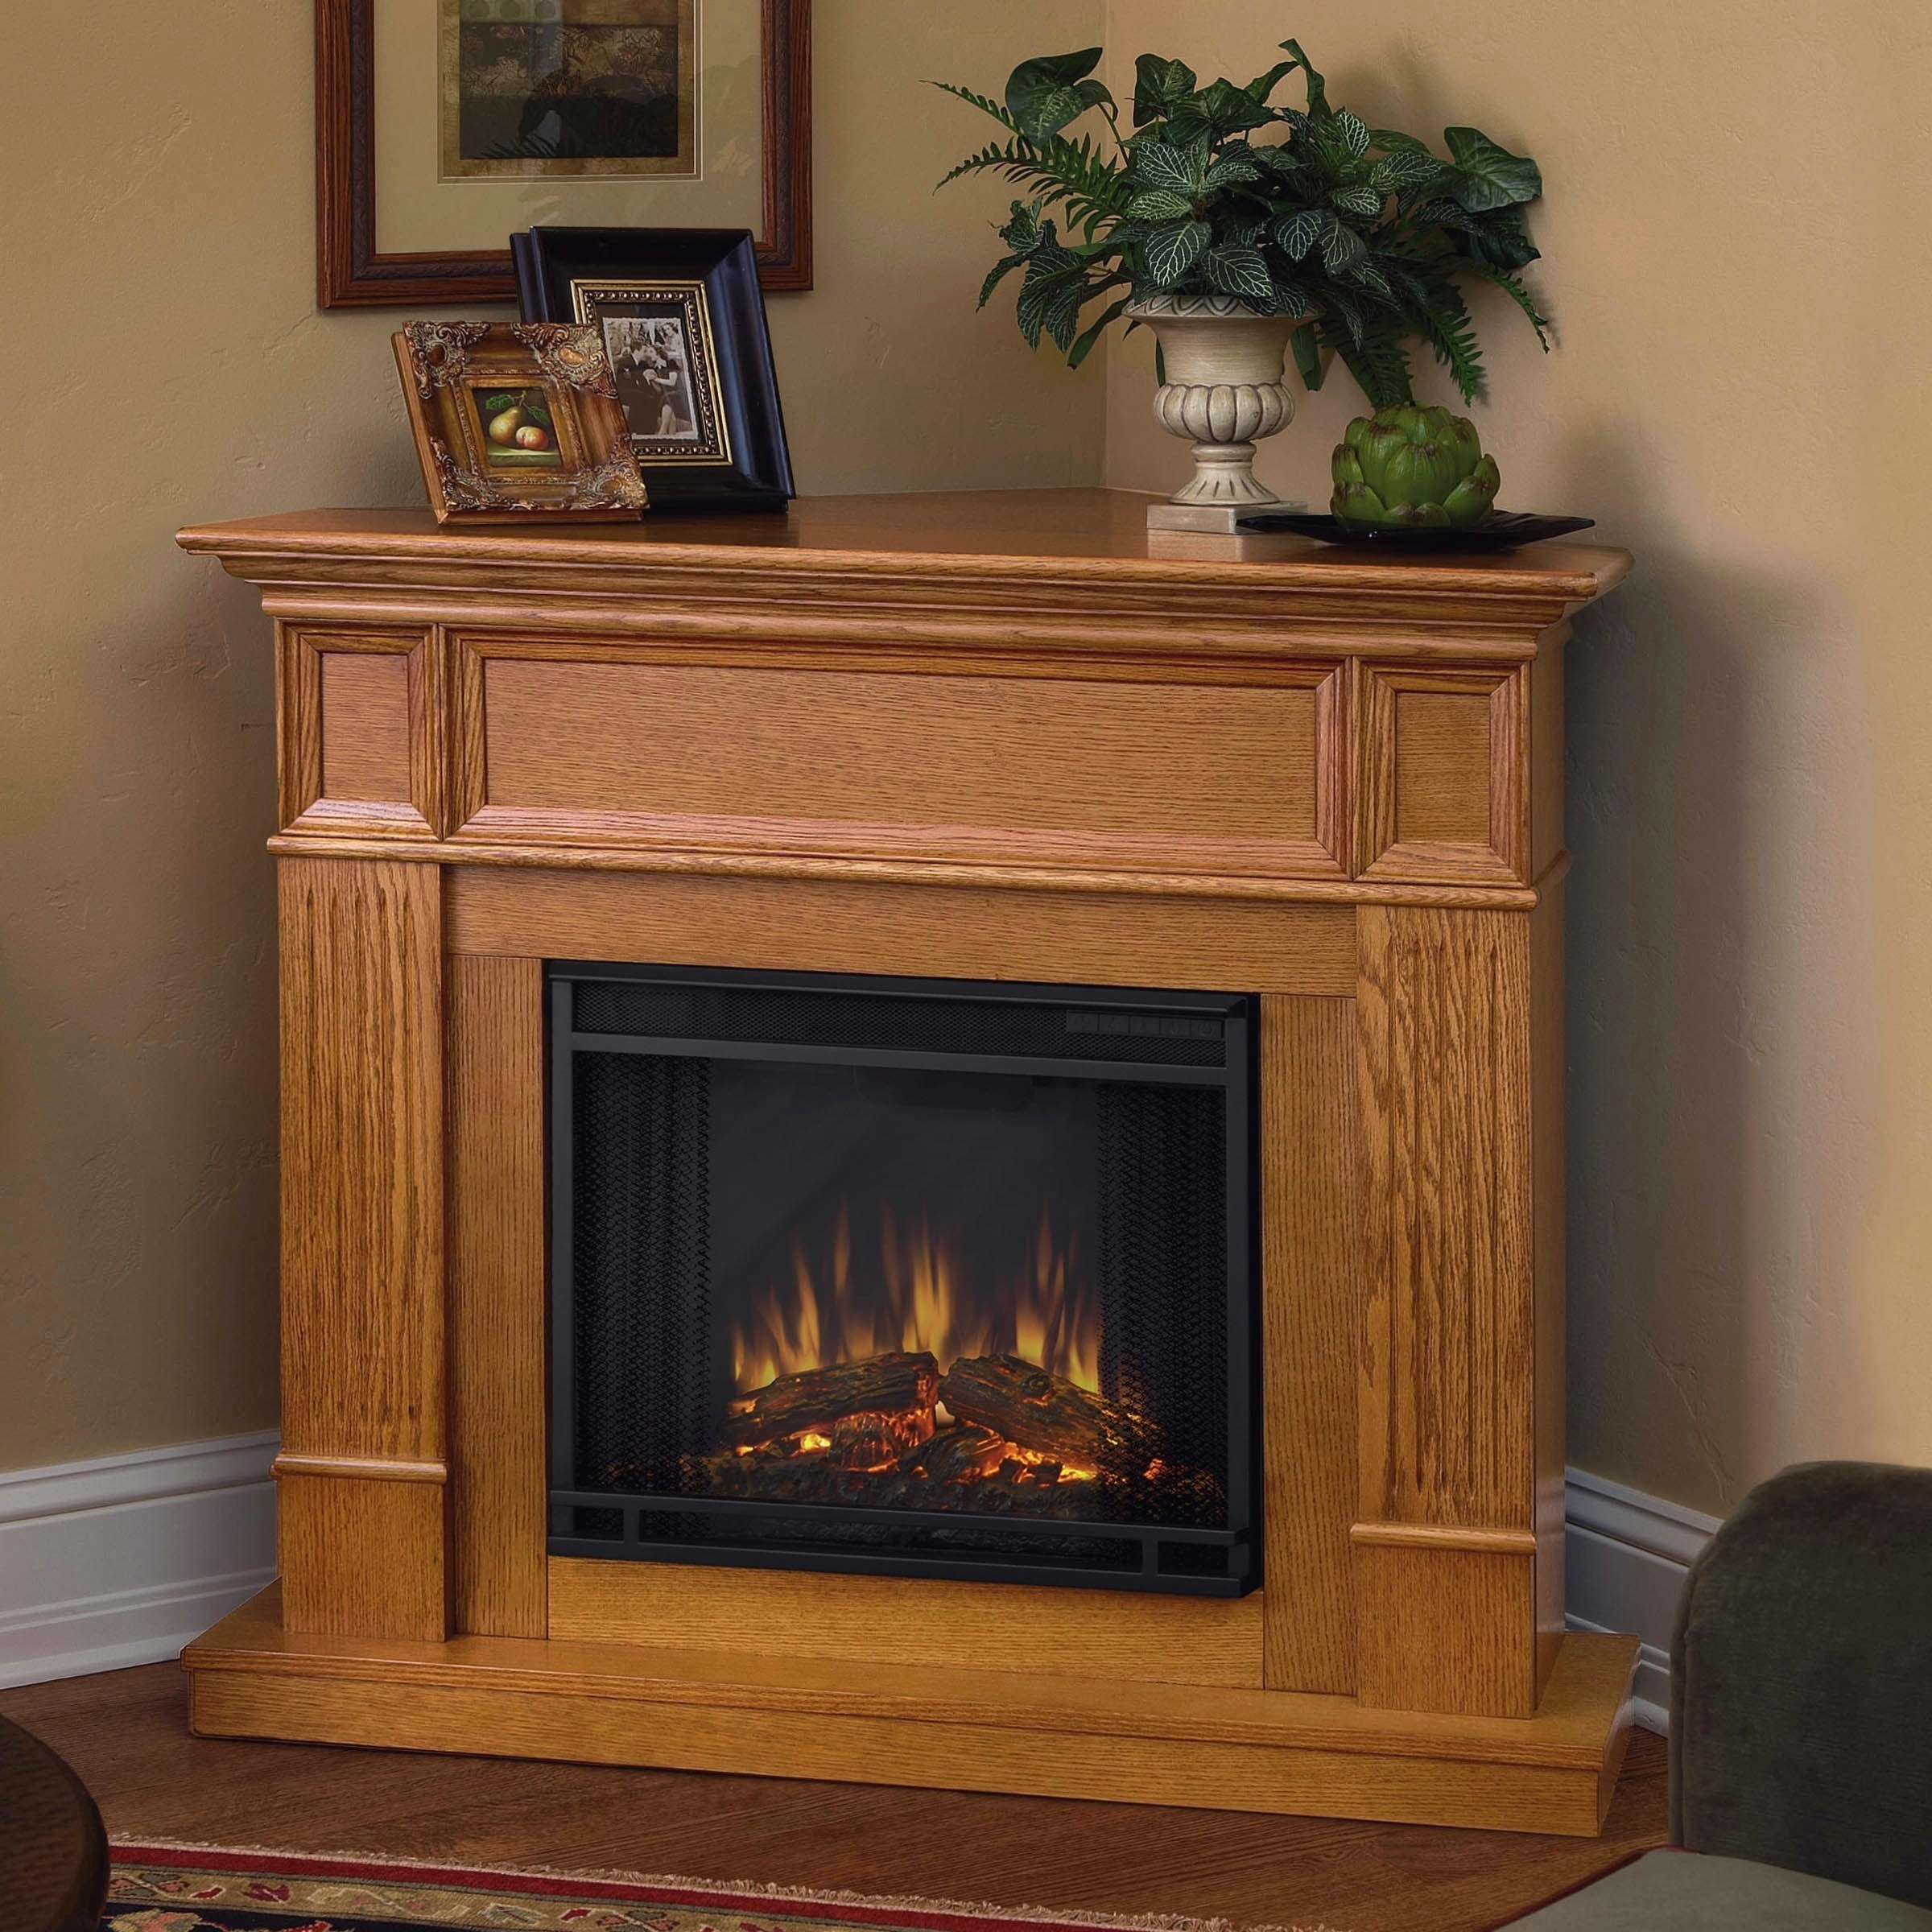 About Wall Mounted Pellet Stove